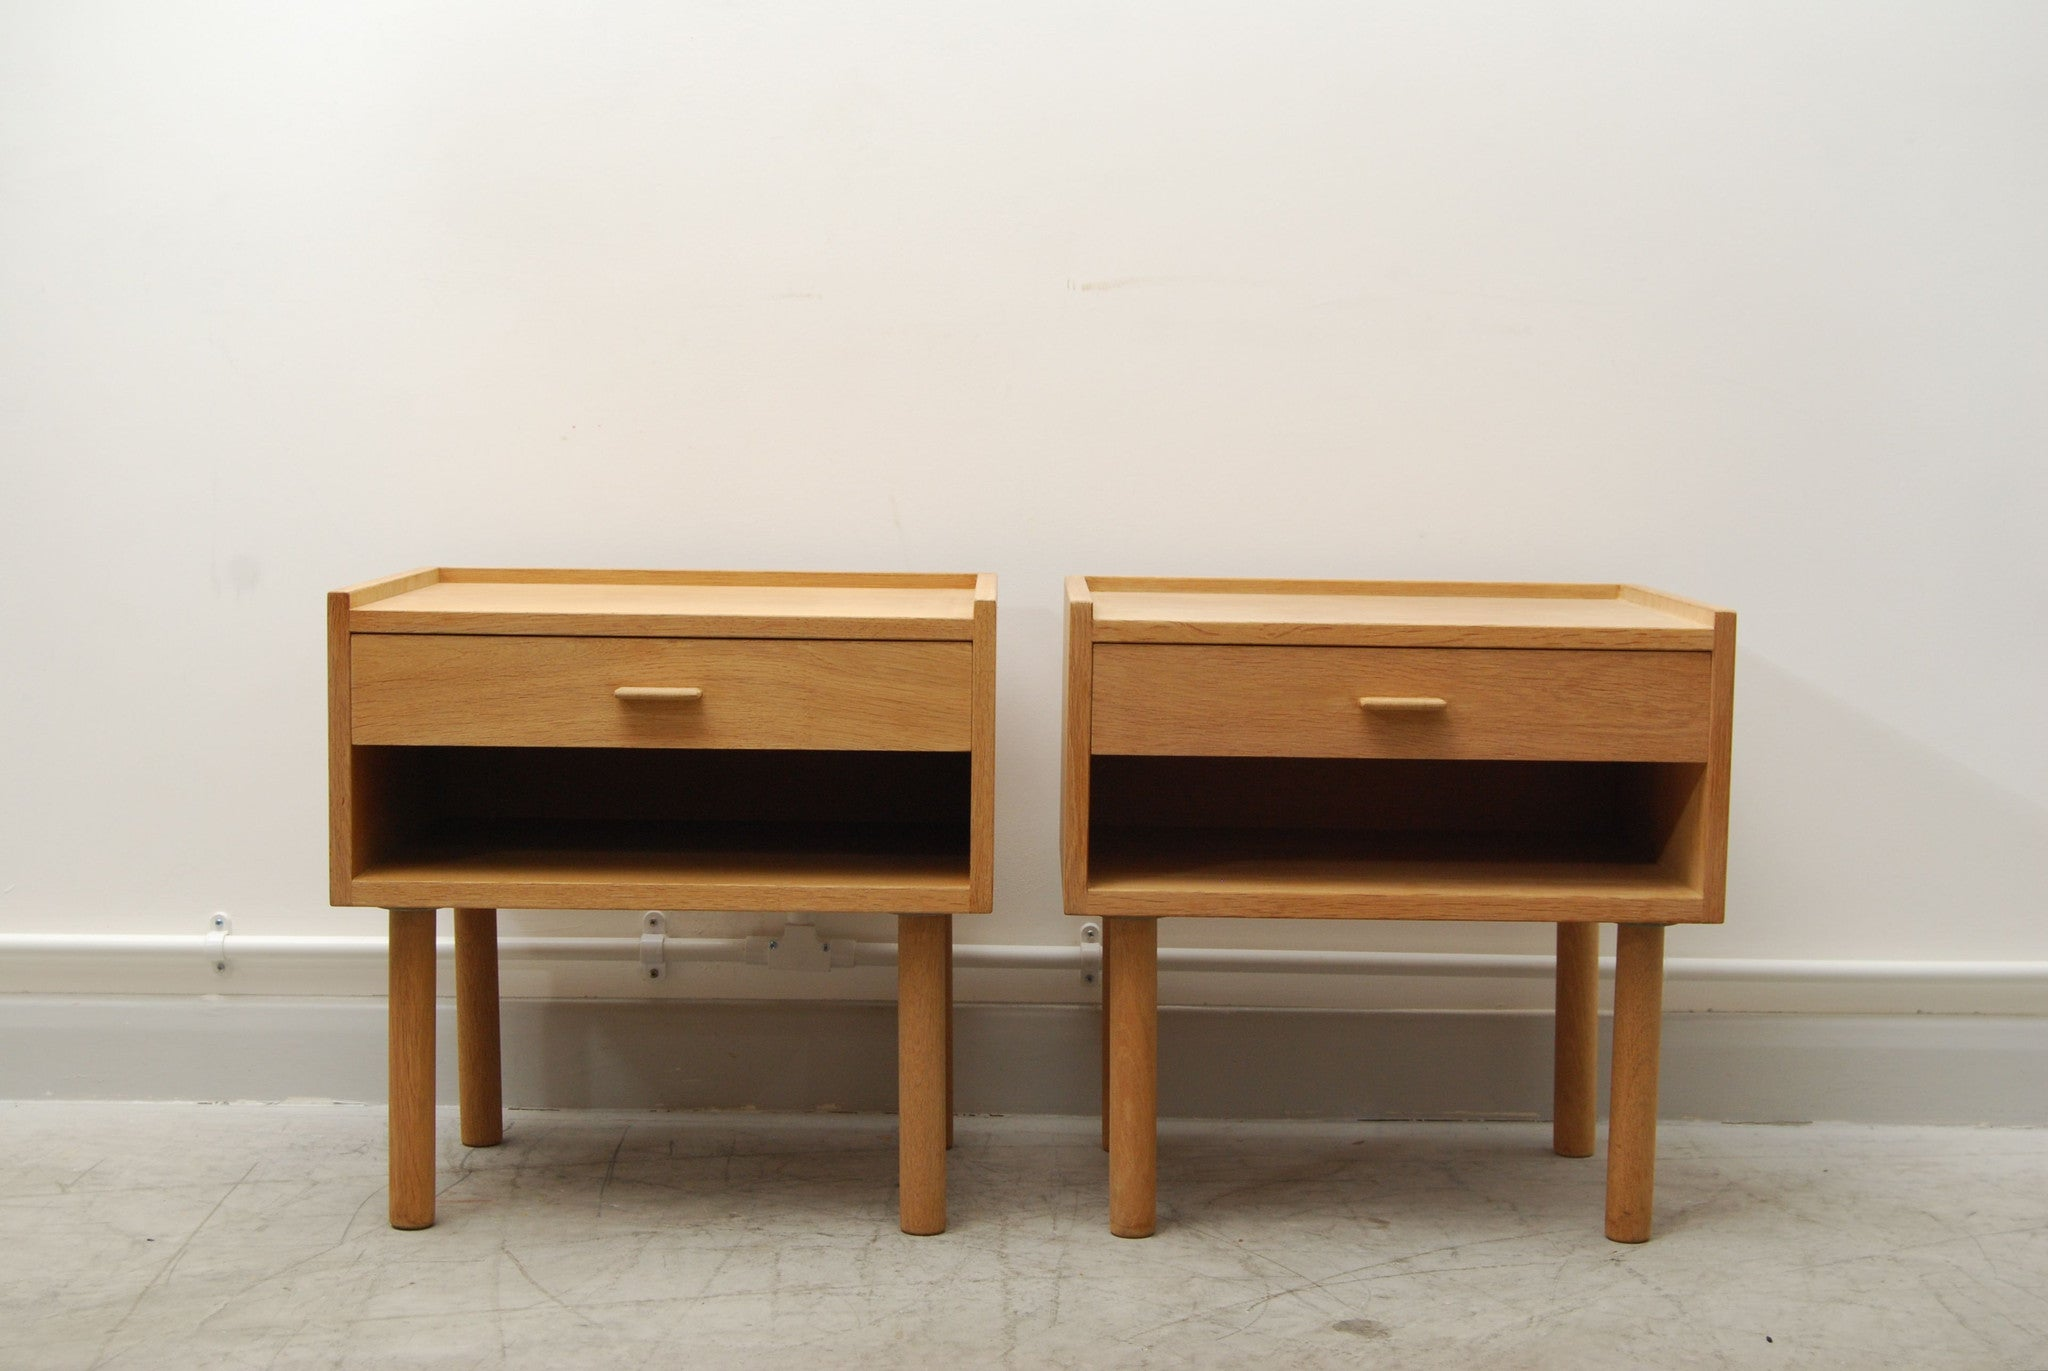 Pair of oak bedside tables by Hans Wegner